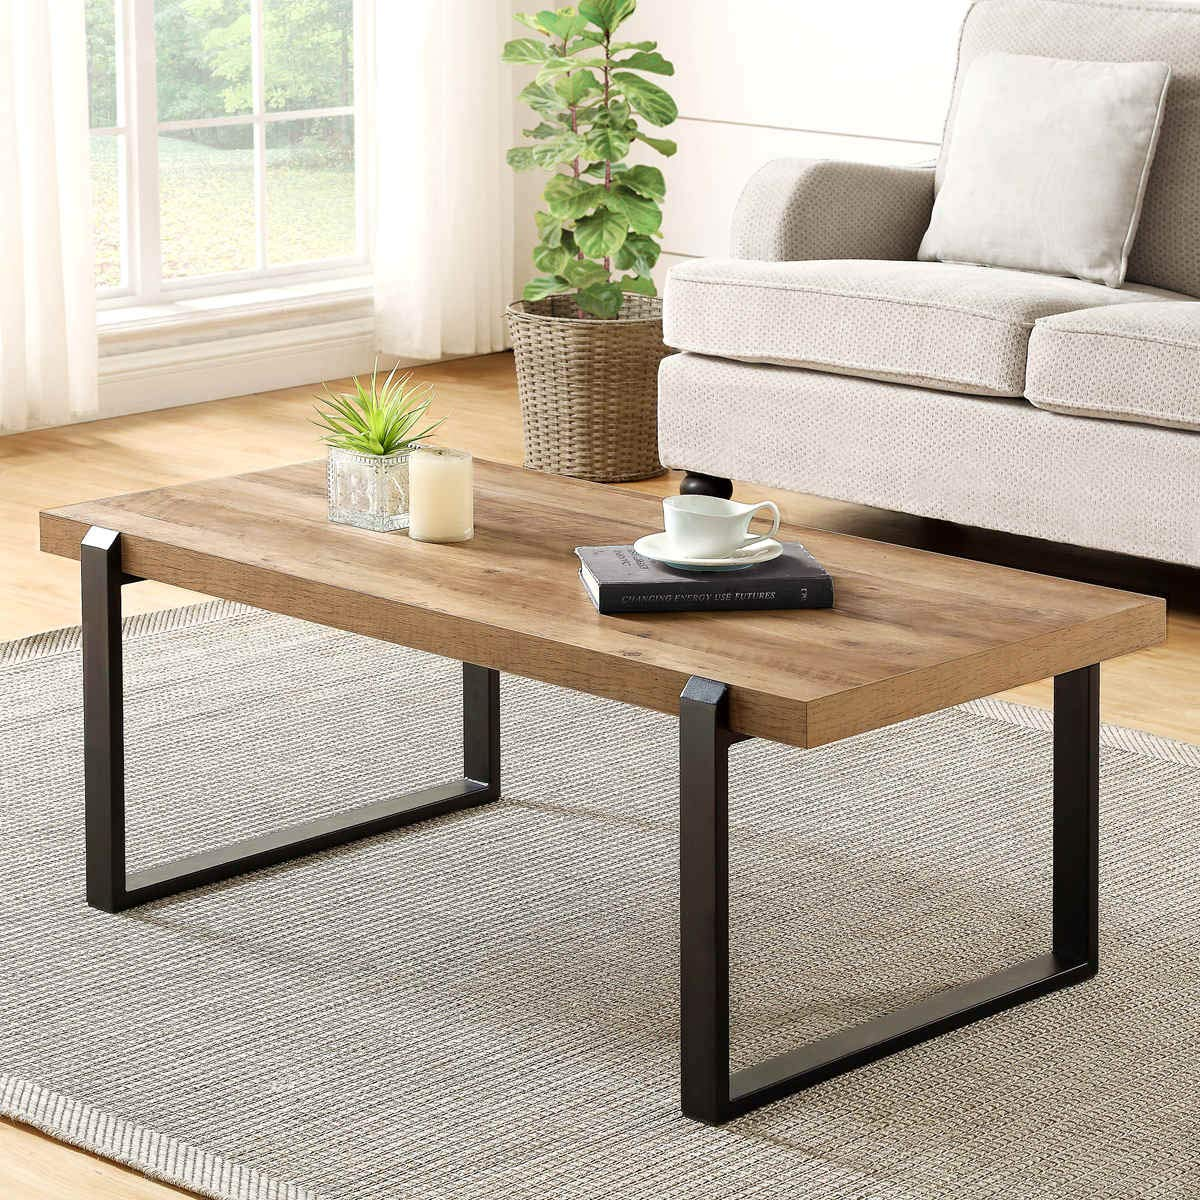 Foluban Rustic Coffee Table Wood And Metal Industrial Cocktail Table For Living Room Oak Home Kitchen Zuiverlucht Tables